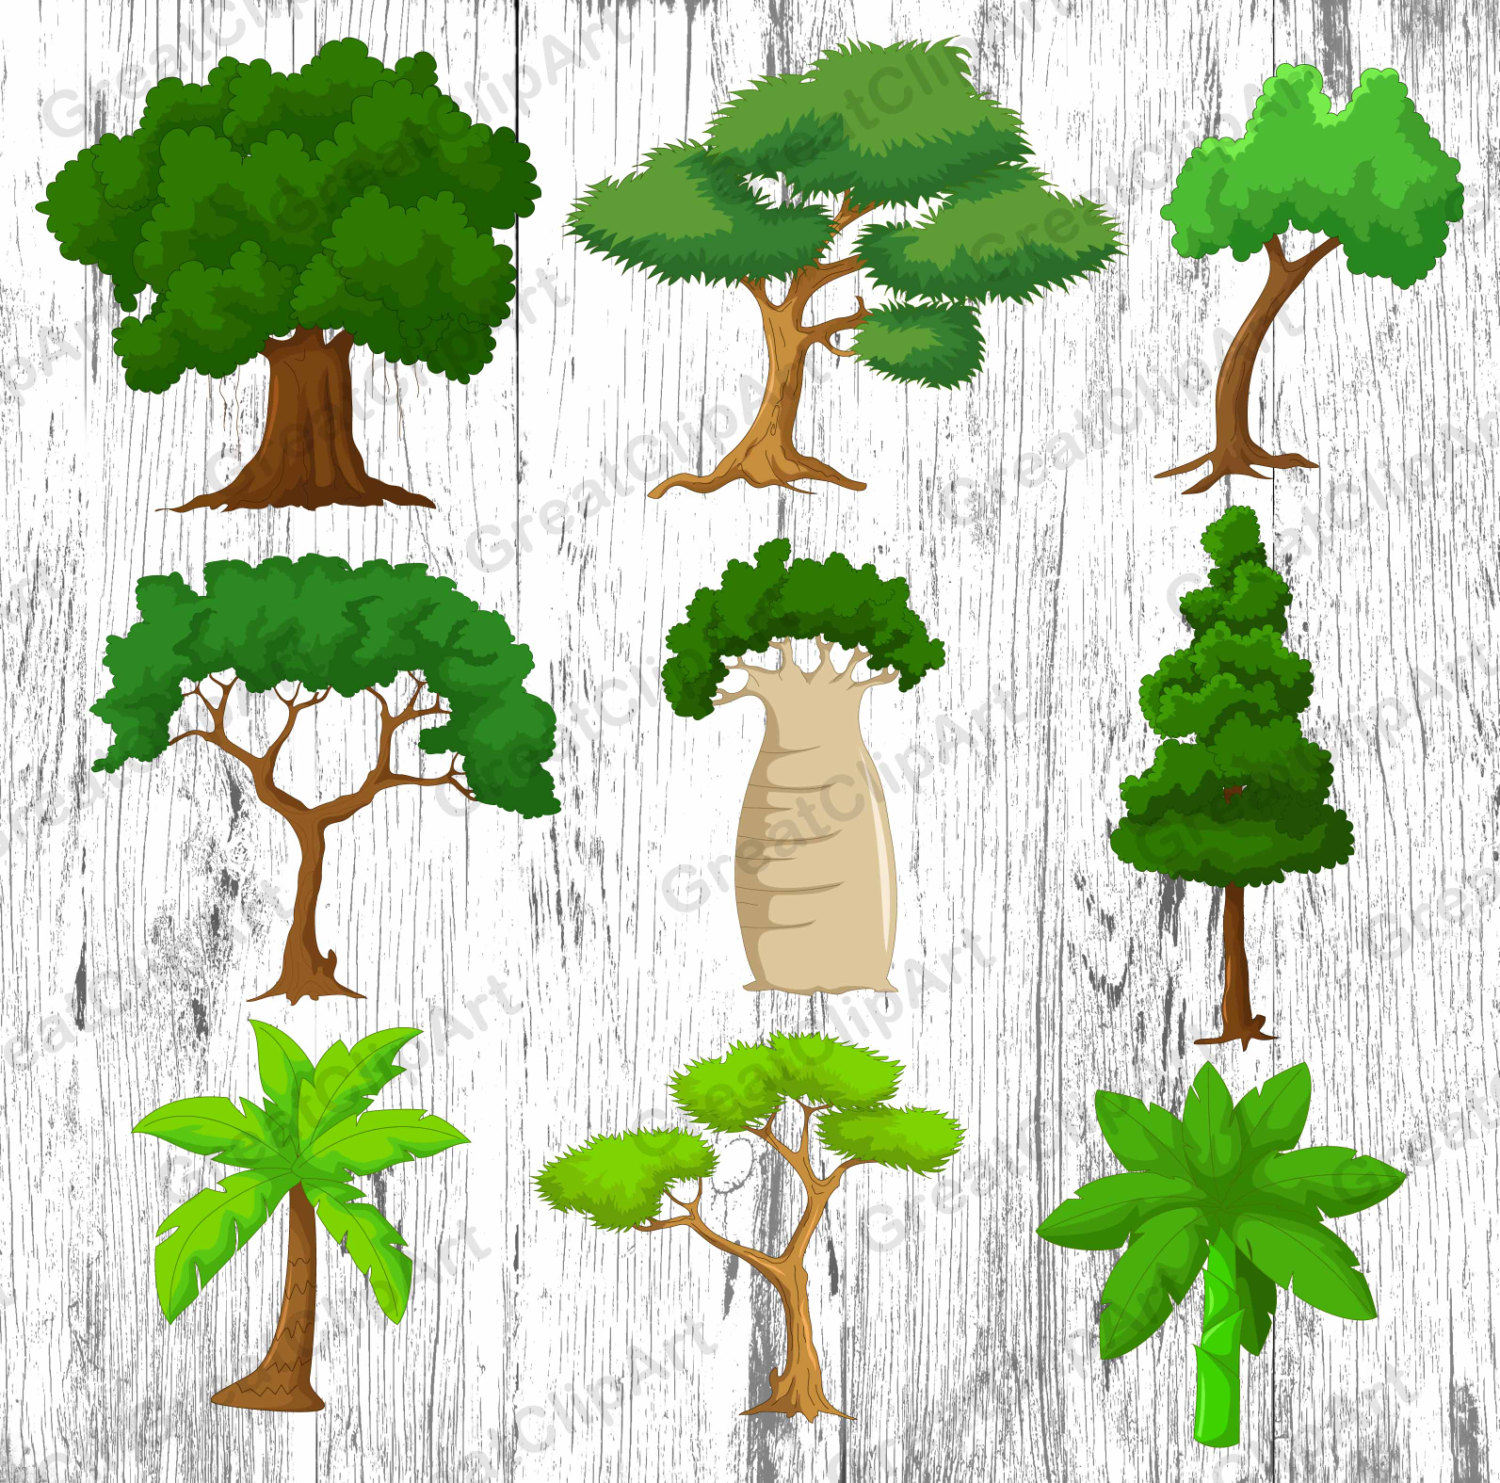 Wood clipart colorful tree 9 clipart is digital file